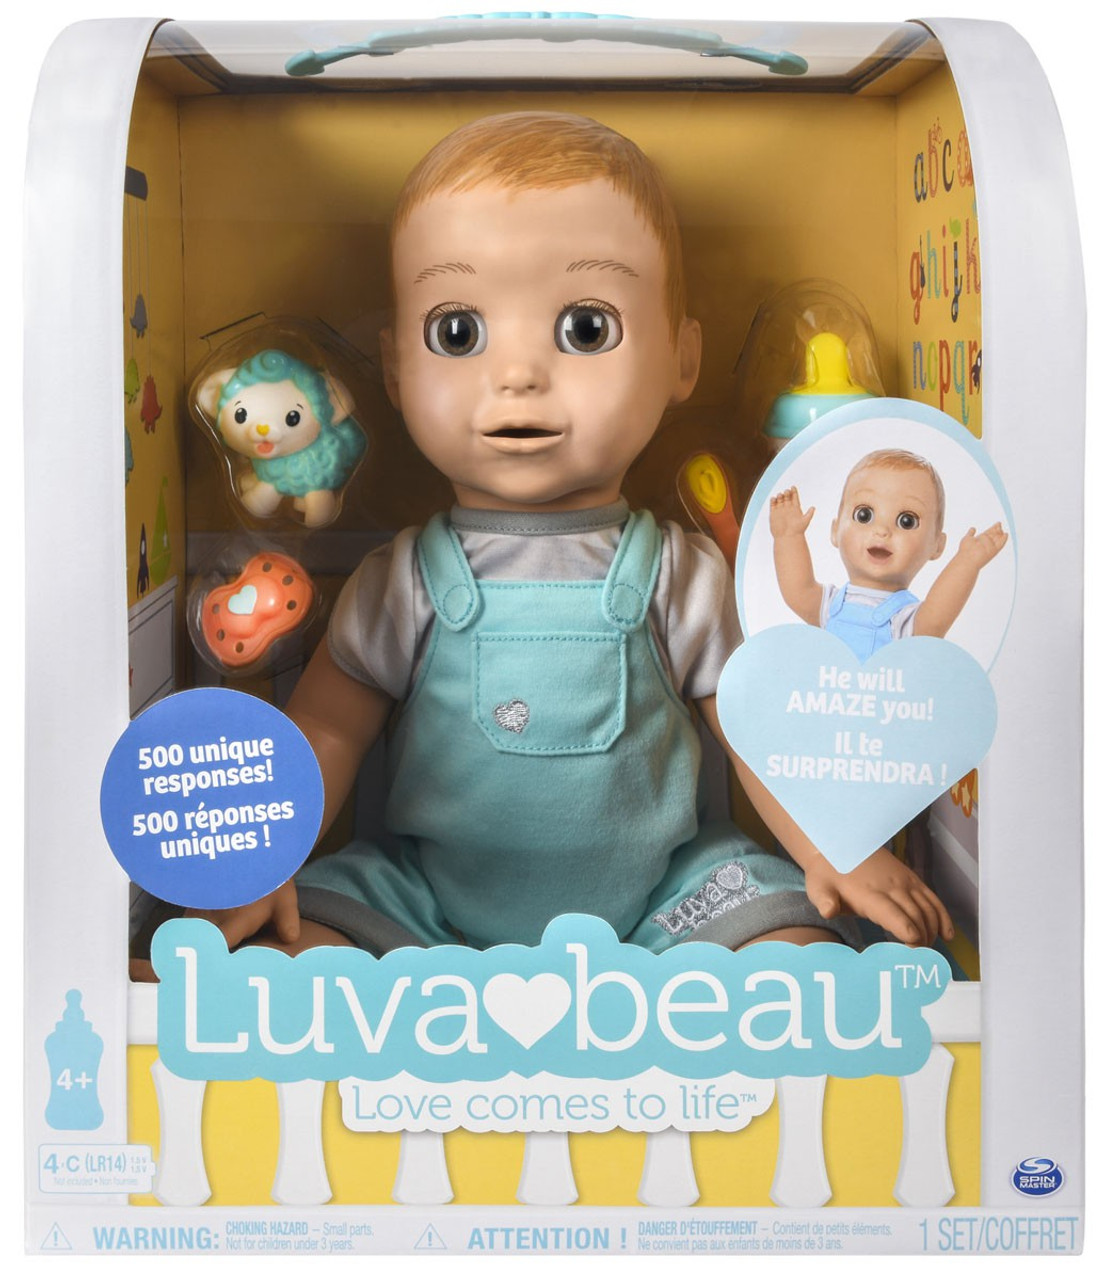 Luvabella Luvabeau Boy Responsive Baby Doll Light Blue Overalls Spin